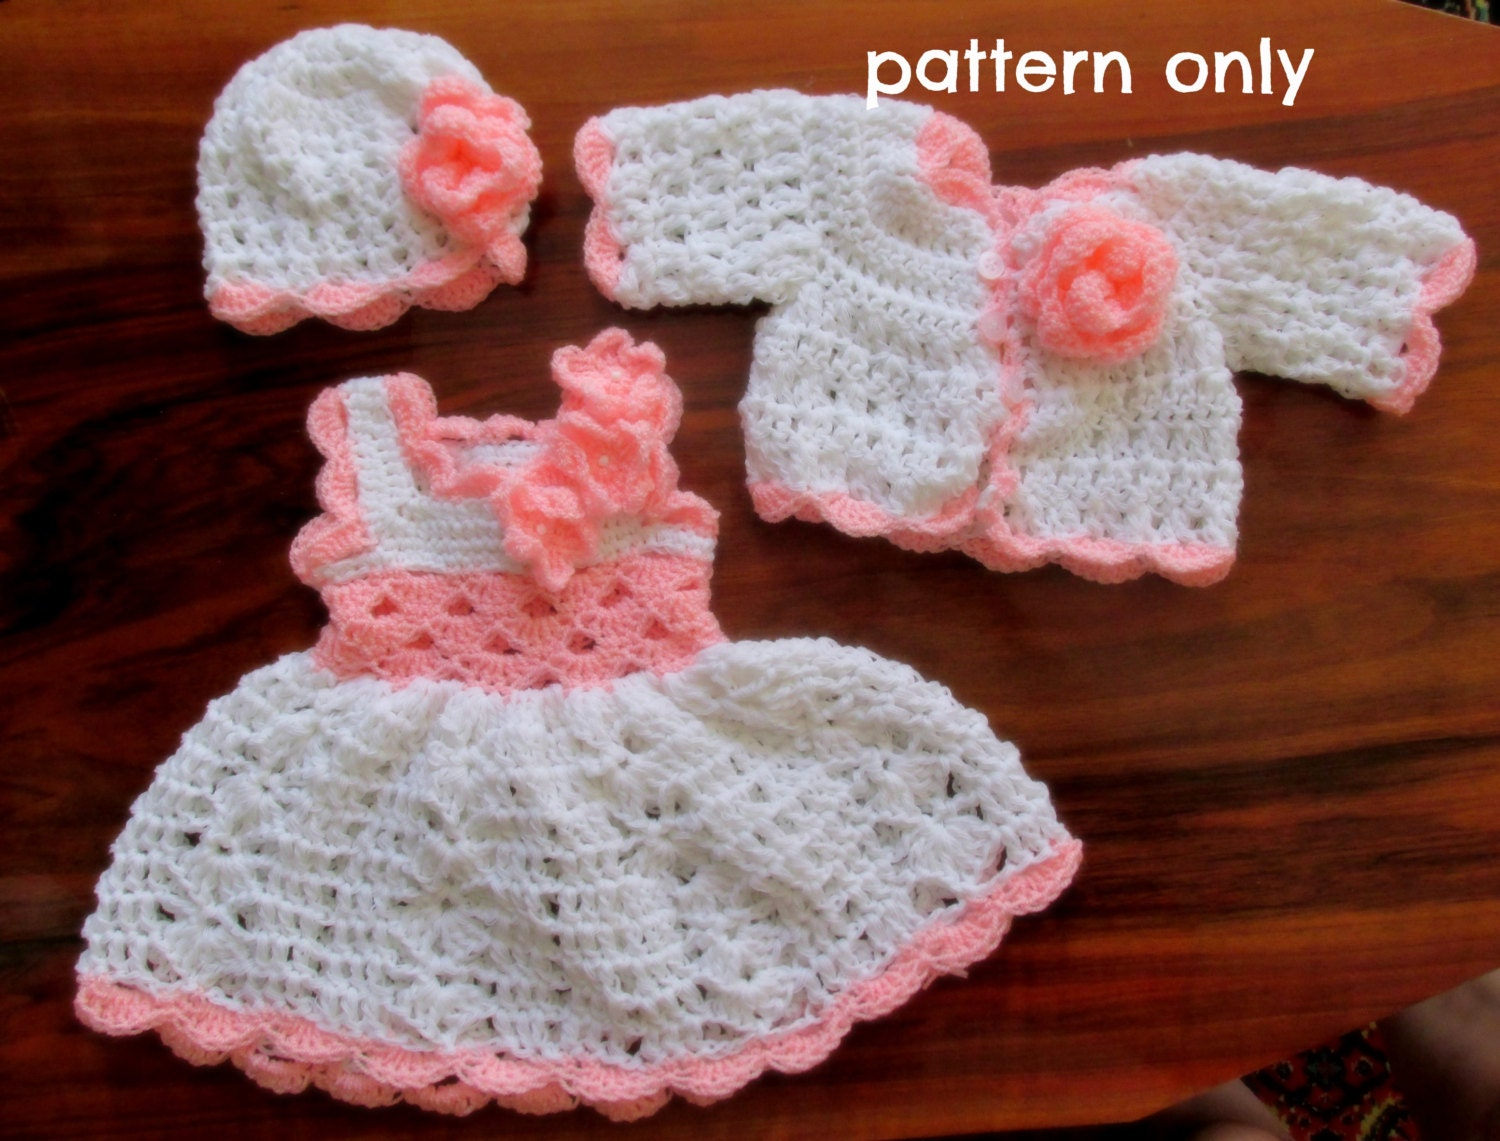 Crochet pattern pdf baby dress pattern newborn crochet set crochet pattern pdf baby dress pattern newborn crochet set crochet pattern baby dress hat crochet baby set infant clothes baby outfit dt1010fo